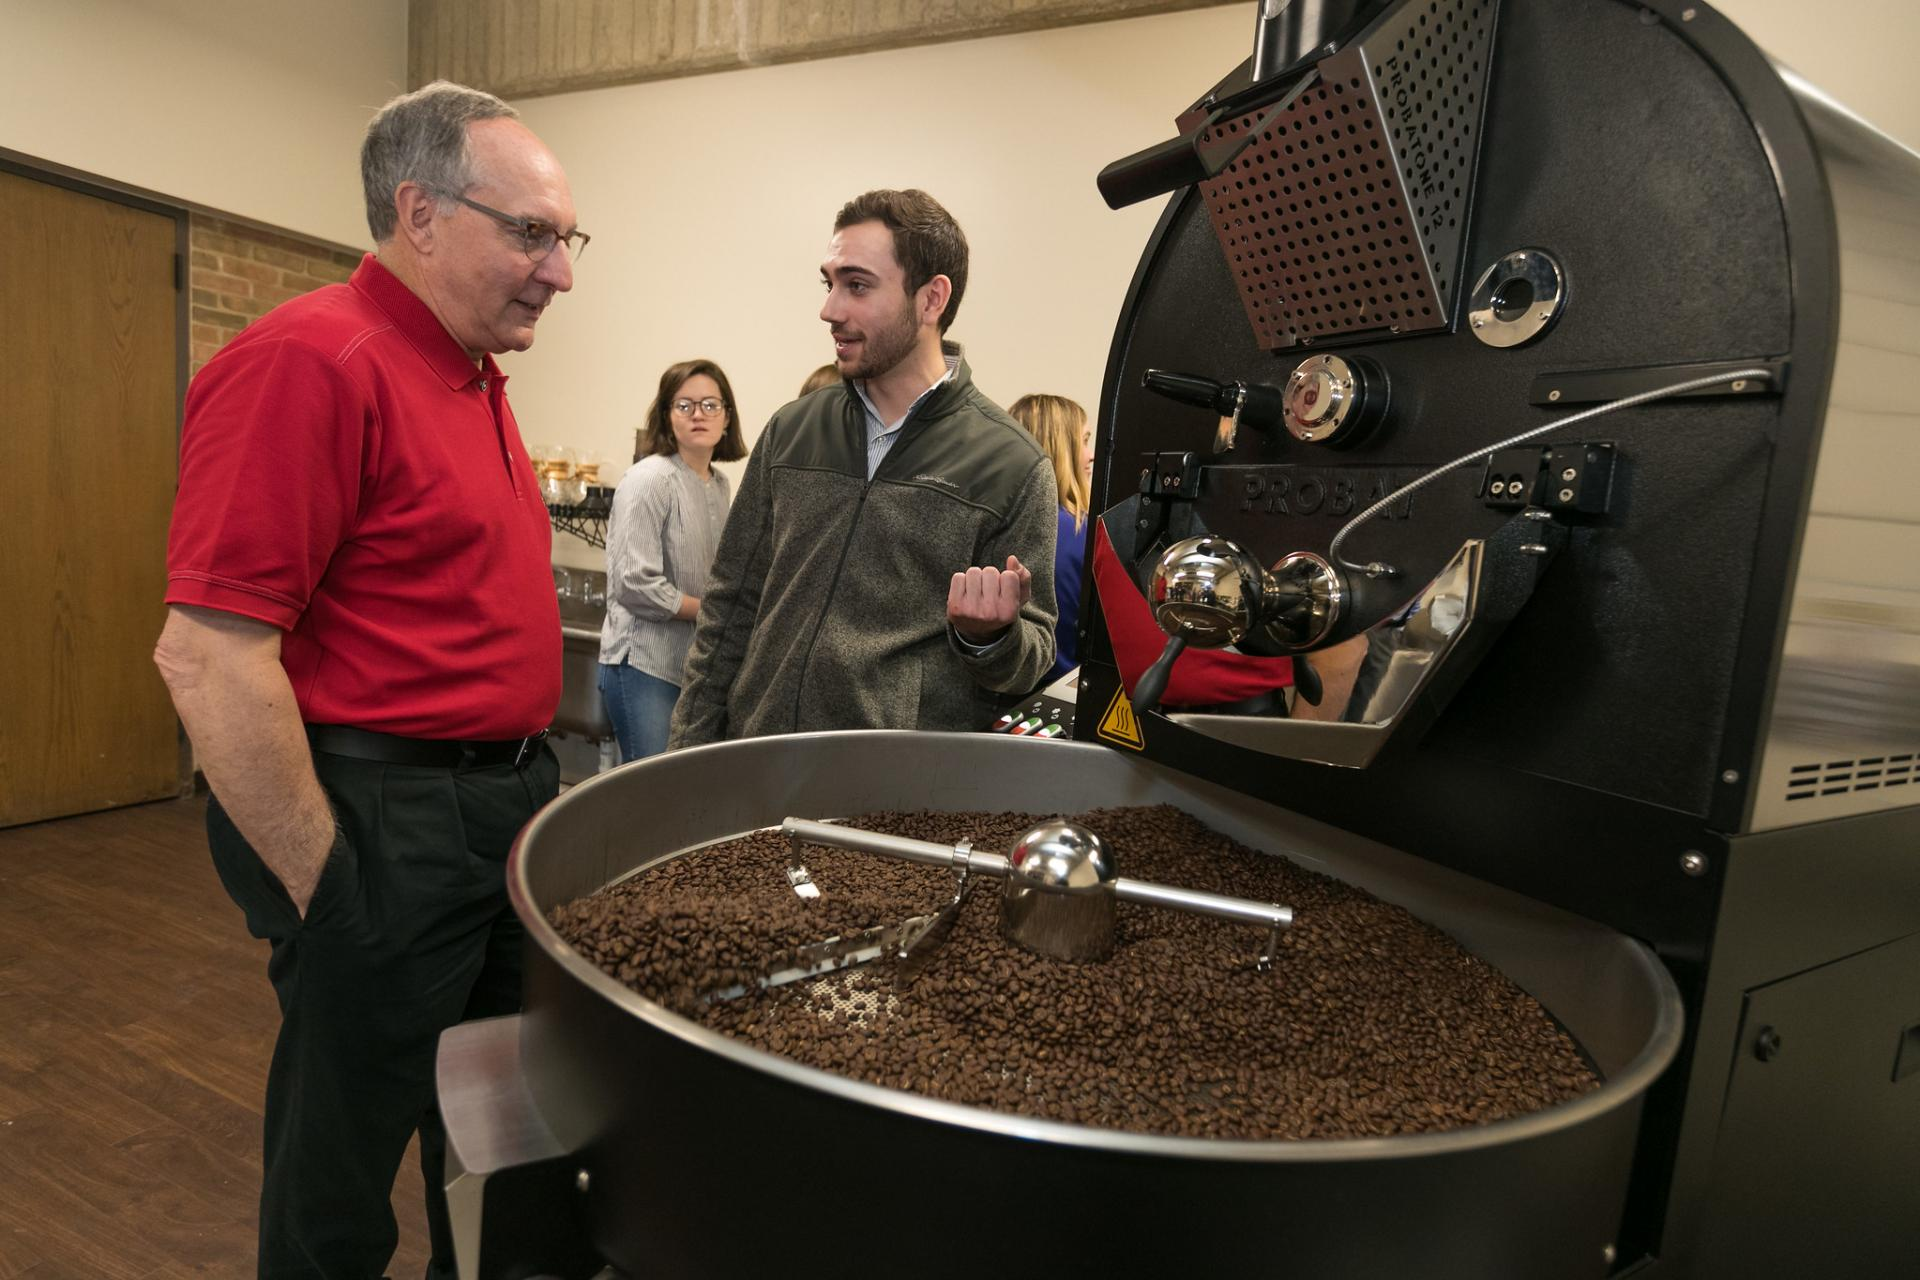 The coffee lab is toured by its founder, Jim McDermet.